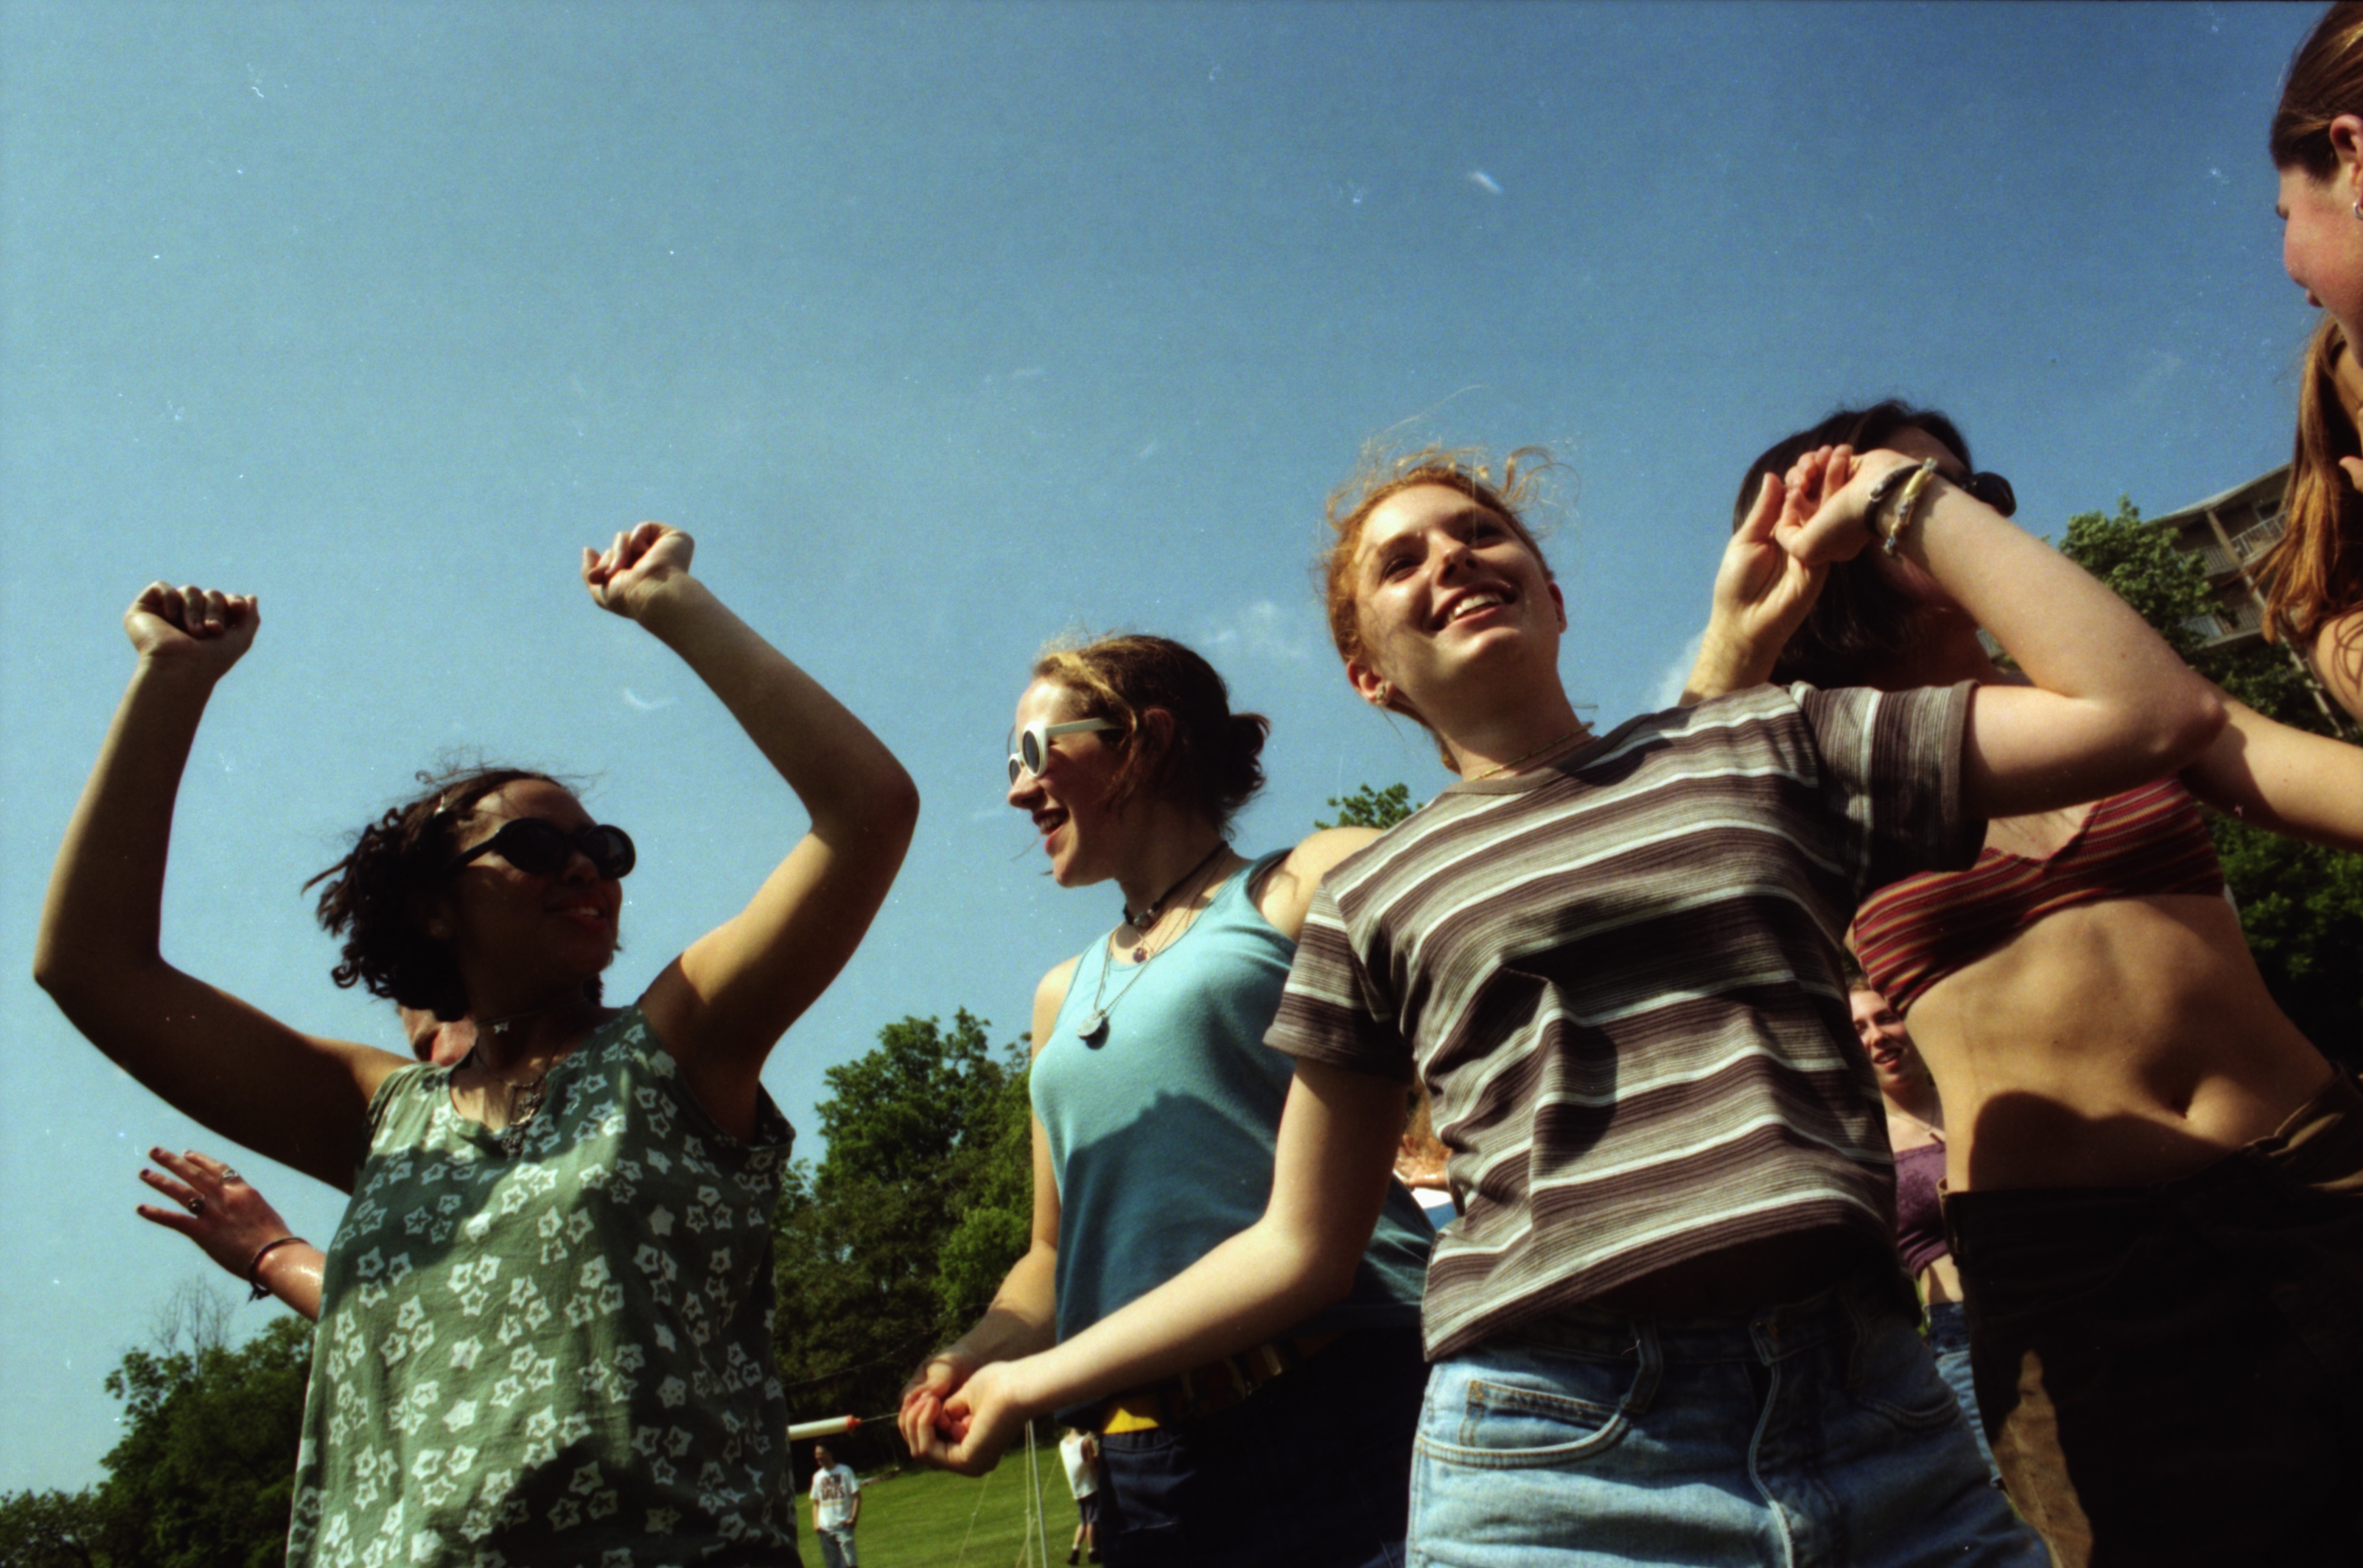 Heather Boyd, Audrey Xenakis and other Community High School students at Comstock, West Park, June 13,1996 image